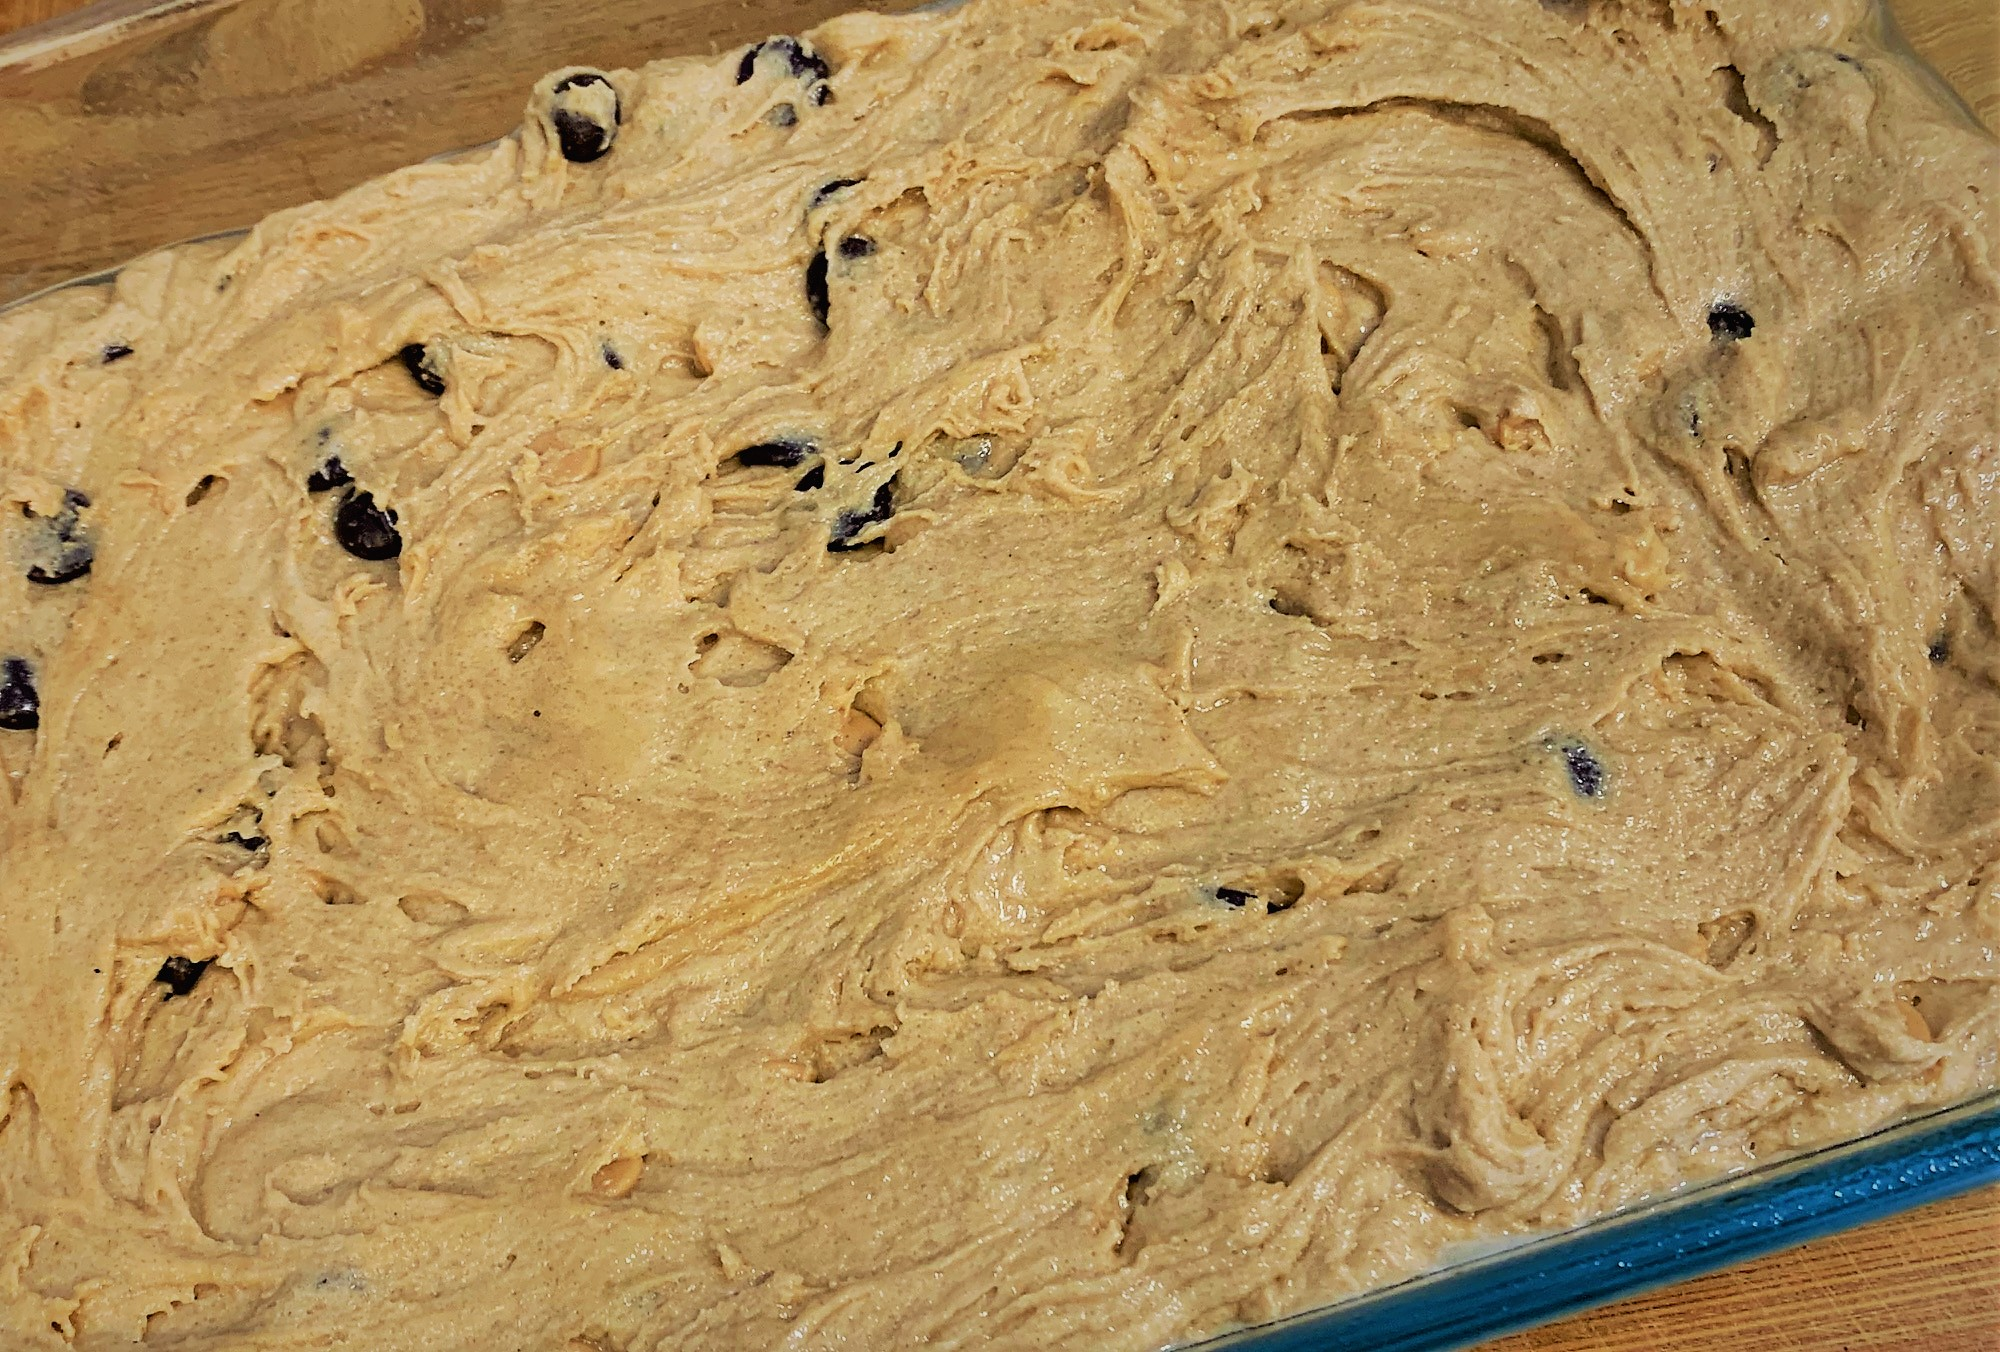 Our Peanut Butter Cup Cake Bar Batter spread within the Baking Dish